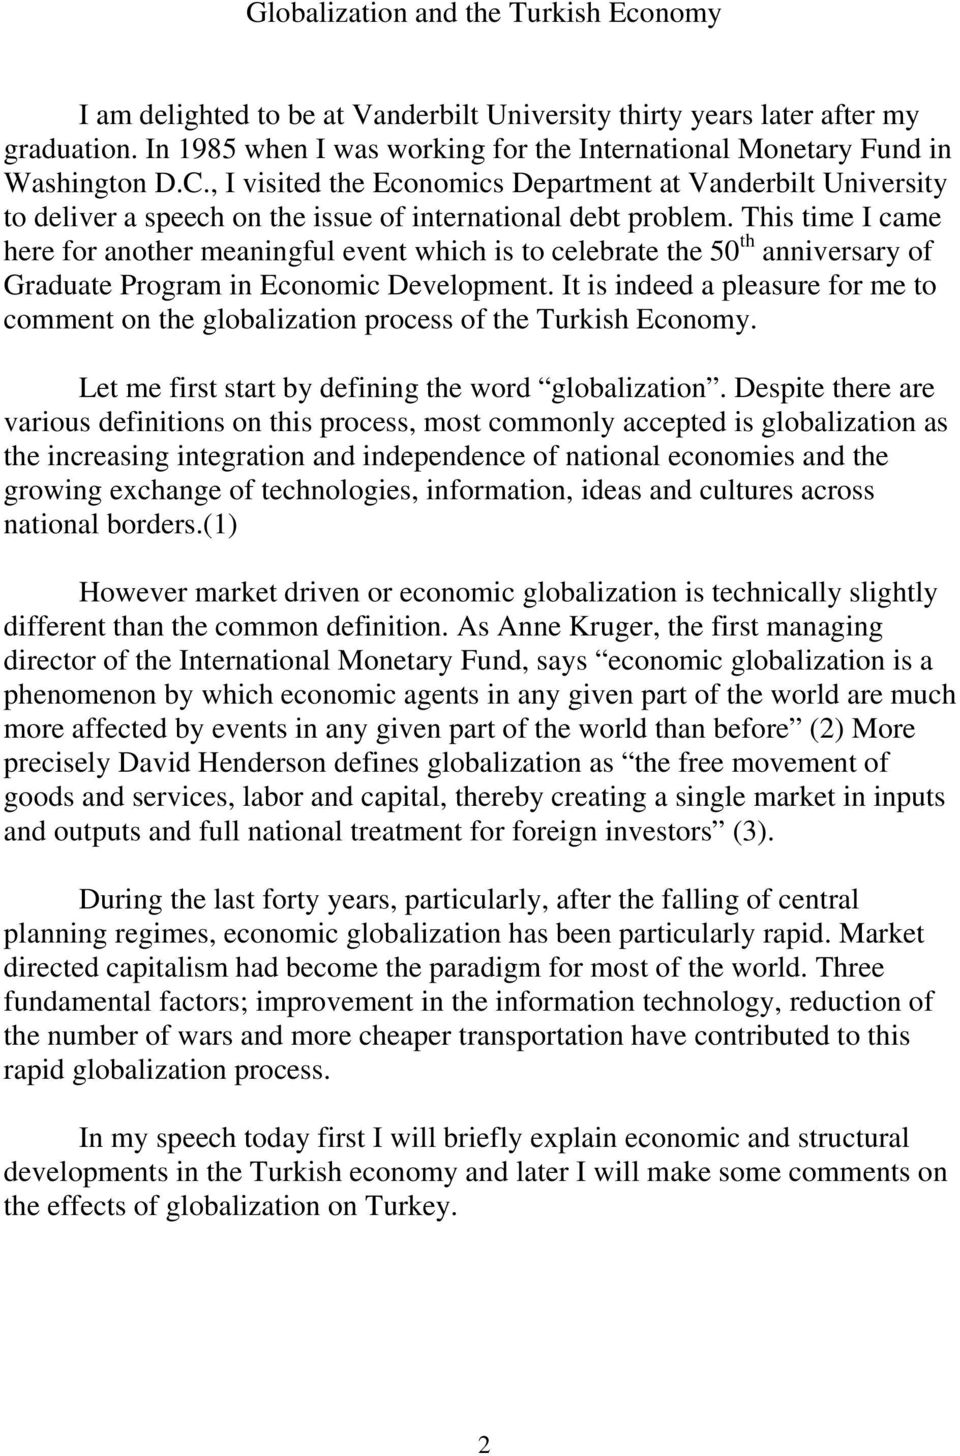 , I visited the Economics Department at Vanderbilt University to deliver a speech on the issue of international debt problem.